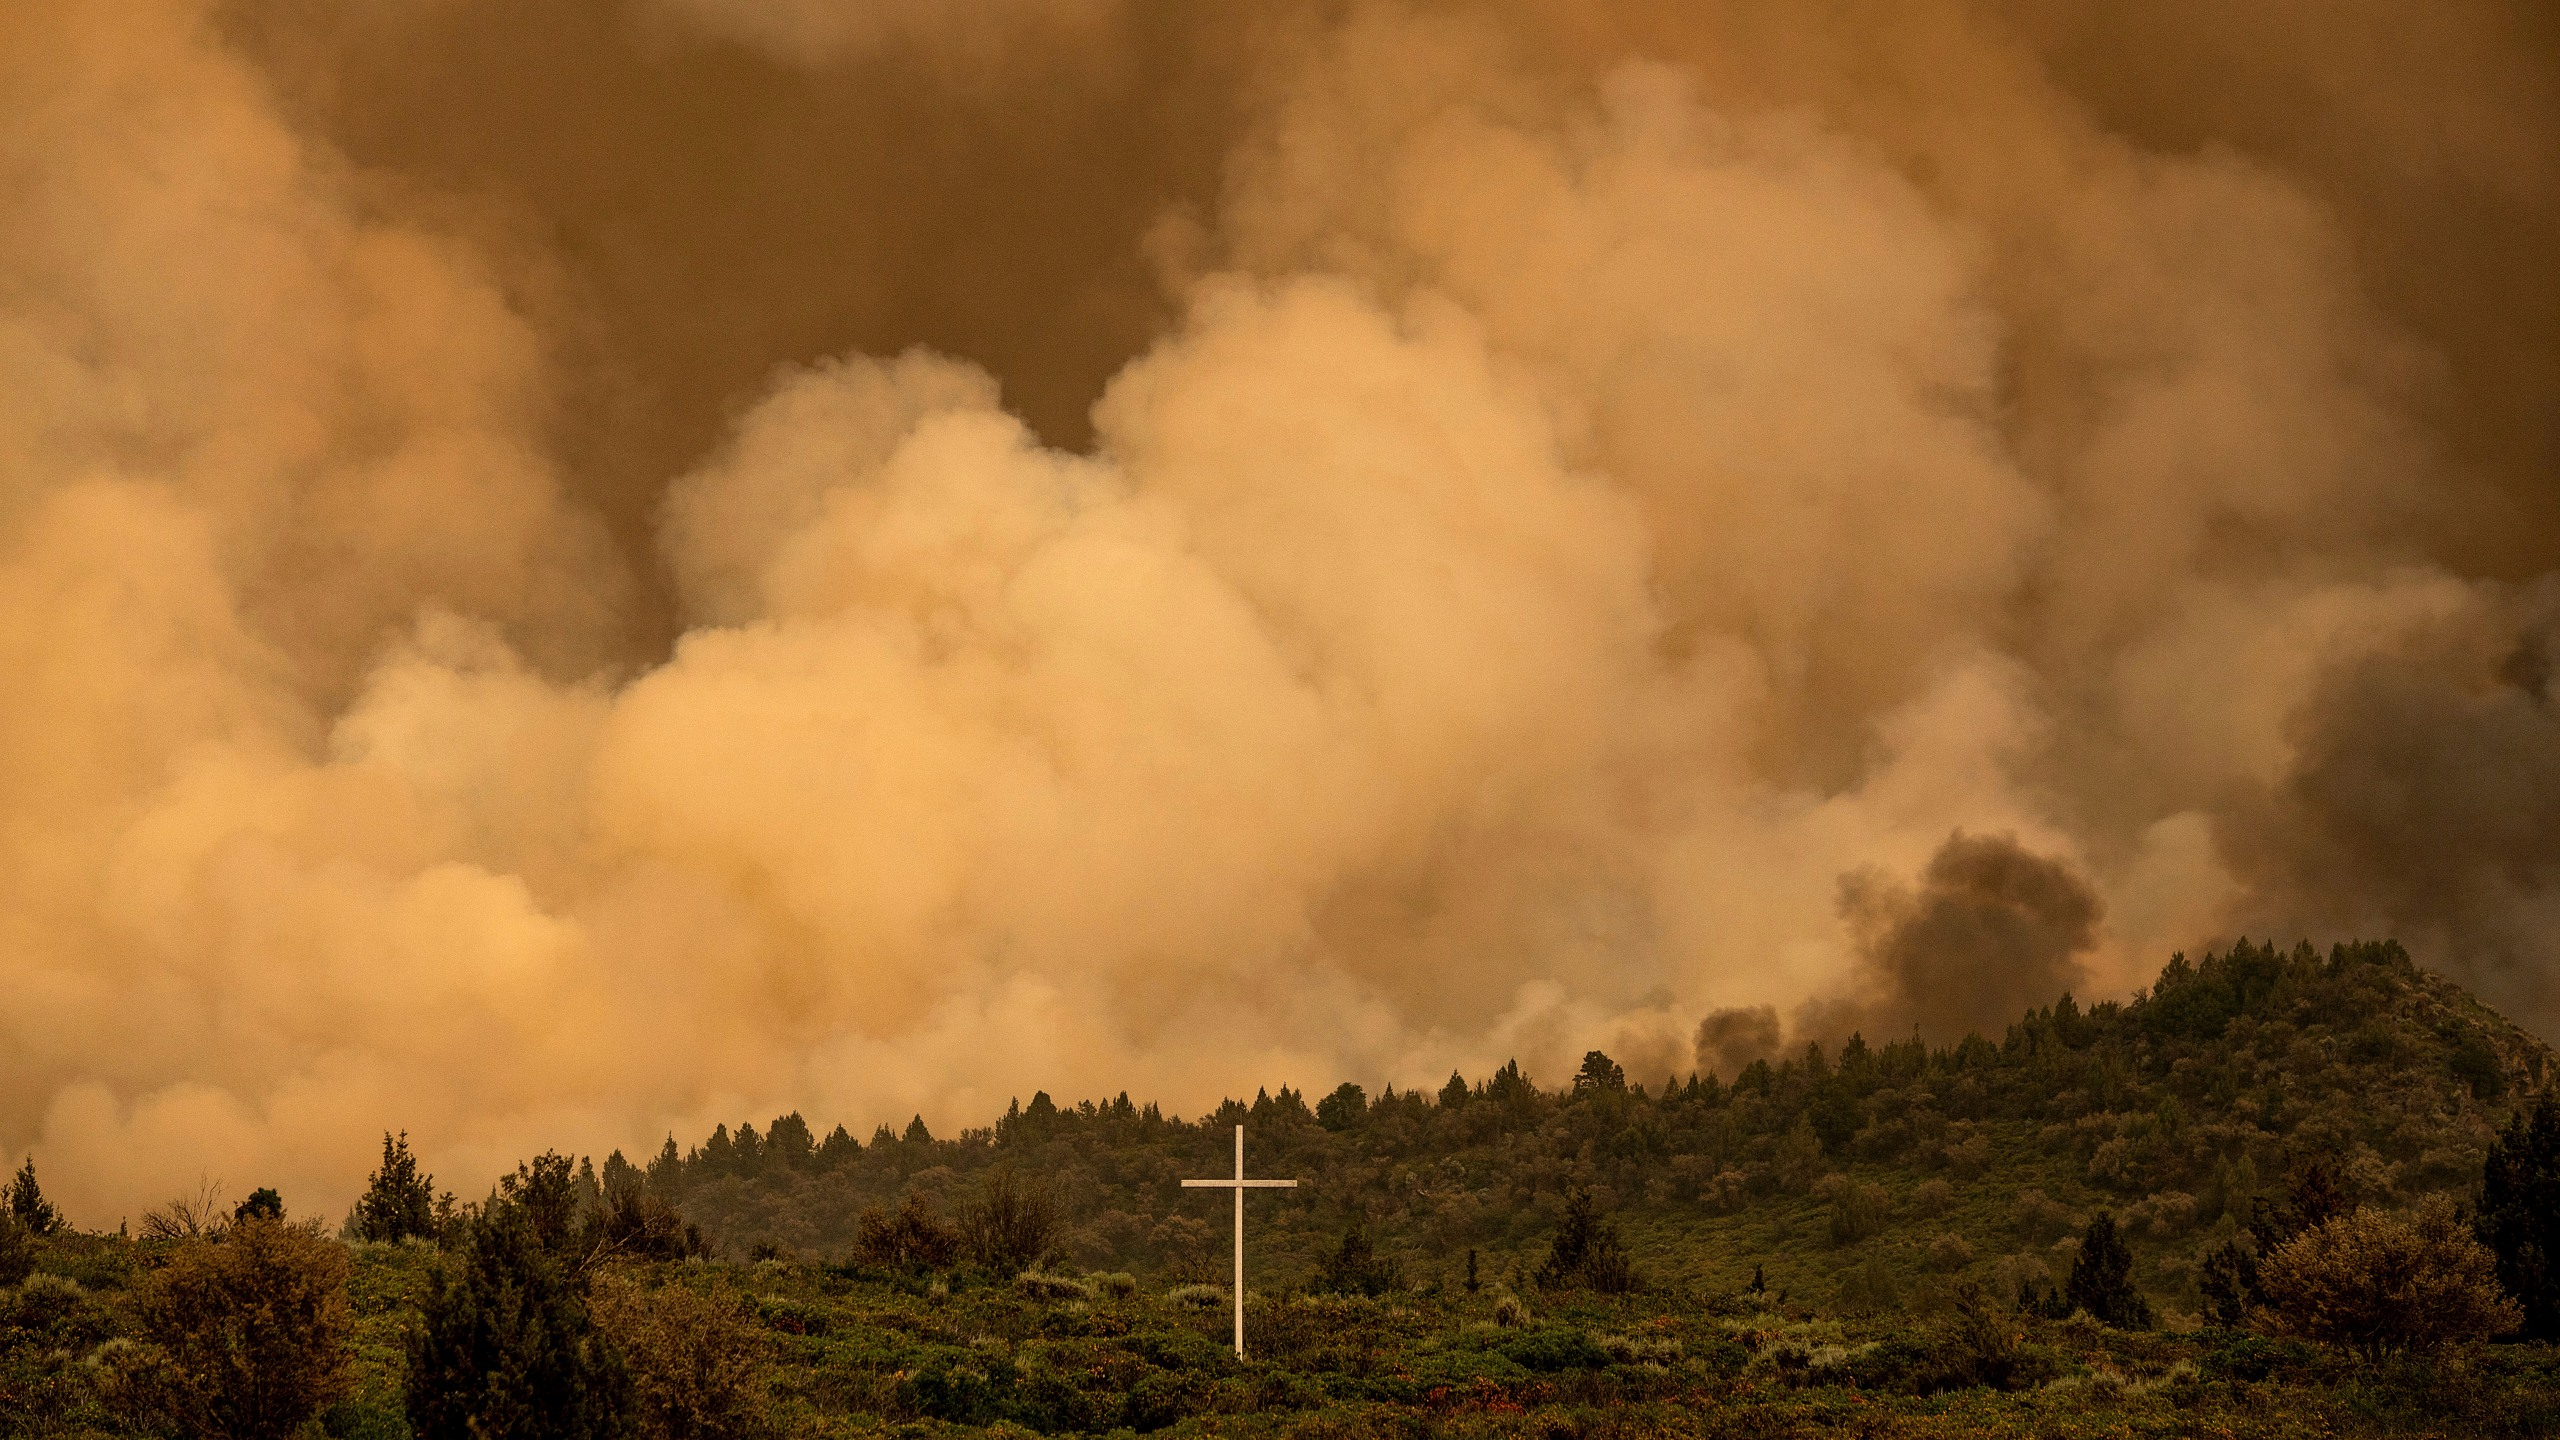 Smoke from the Lava Fire billows above Highway 97 in Weed, Calif., Thursday, July 1, 2021. Firefighters are battling multiple fires in the region following high temperatures and lightning strikes. (AP Photo/Noah Berger)